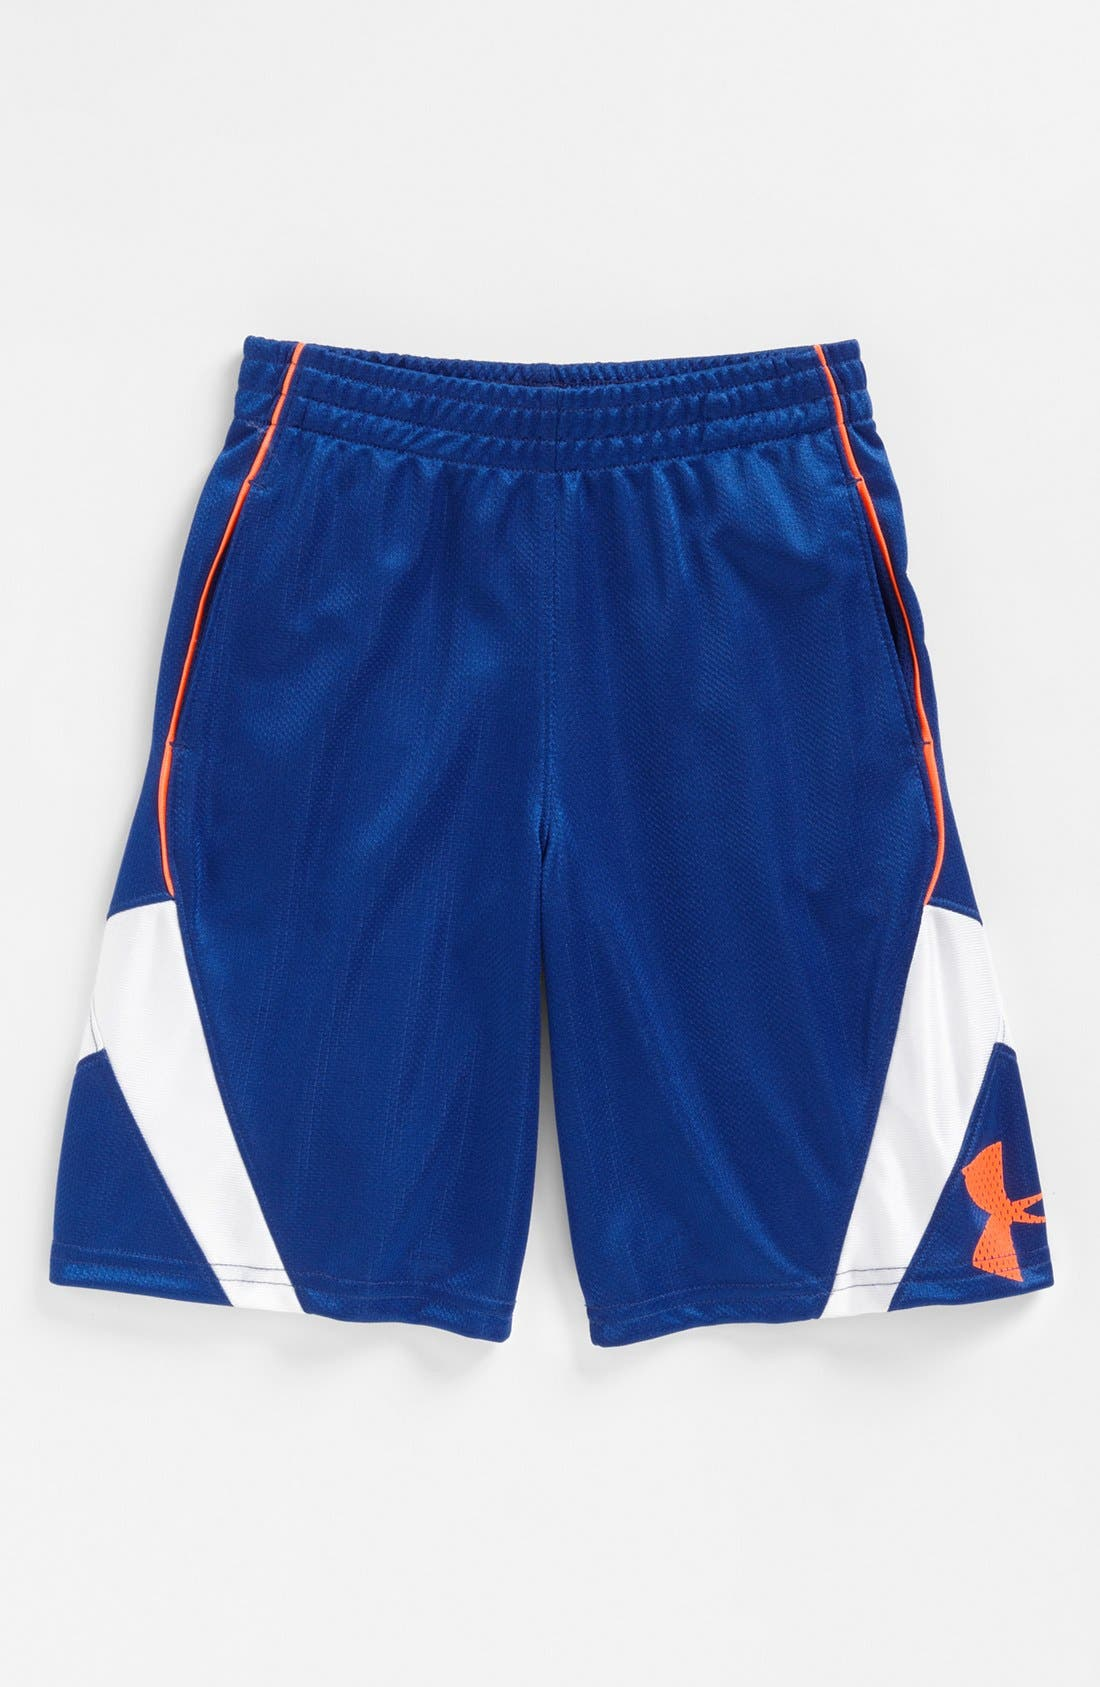 Alternate Image 1 Selected - Under Armour 'Jhawk' Shorts (Little Boys)